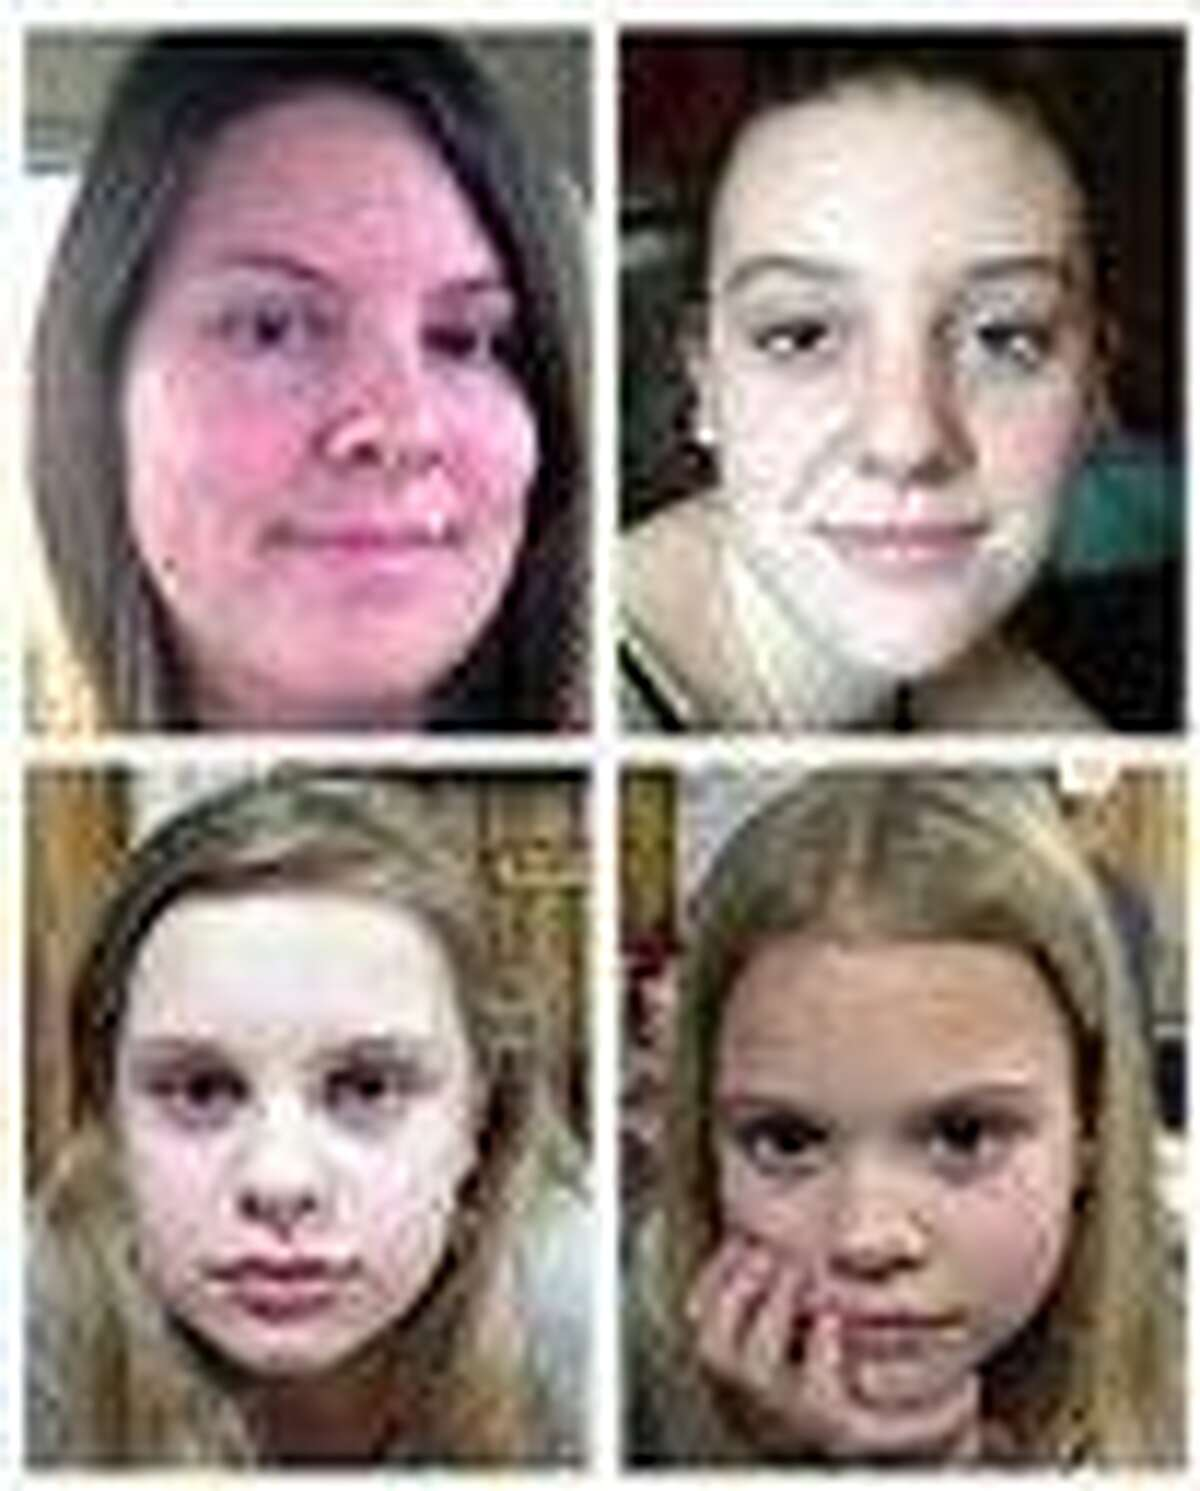 This file combo image of undated photos provided by the Mississippi Department of Public Safety shows, clockwise from top left, Jo Ann Bain and her daughters: Adrienne, 14; Kyliyah 8; and Alexandria, 12. Bain and her daughters disappeared April 27. The bodies of Jo Ann Bain and Adrienne Bain were found last week behind the mobile home in northern Mississippi where suspect Adam Mayes lived. The FBI said May 8 that authorities were hopeful the two young girls -- Alexandria and Kyliyah -- were still alive, but declined to say why. Associated Press